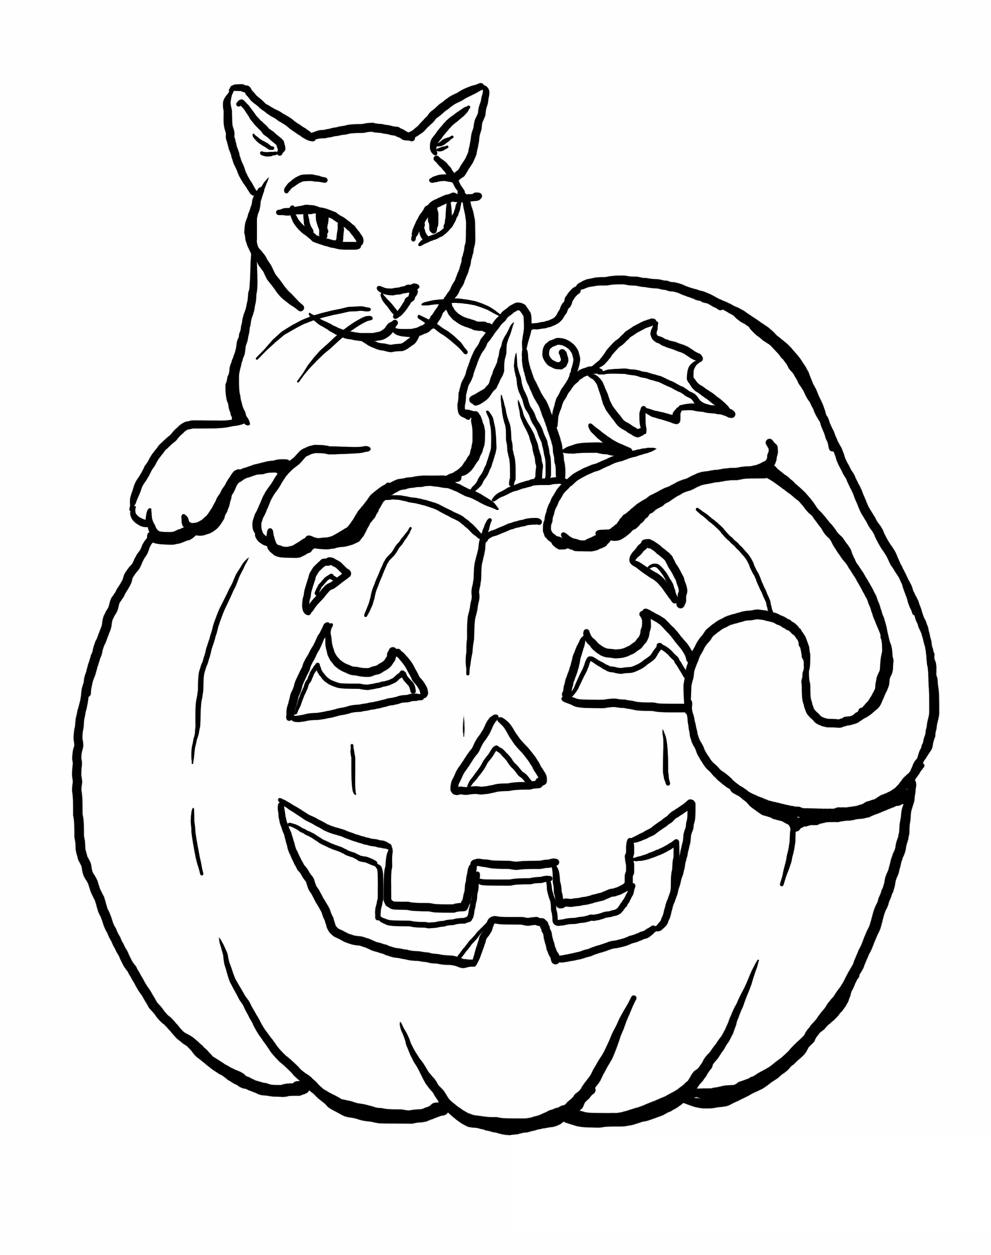 Free Spooky Pumpkin and Cat Coloring Pages printable